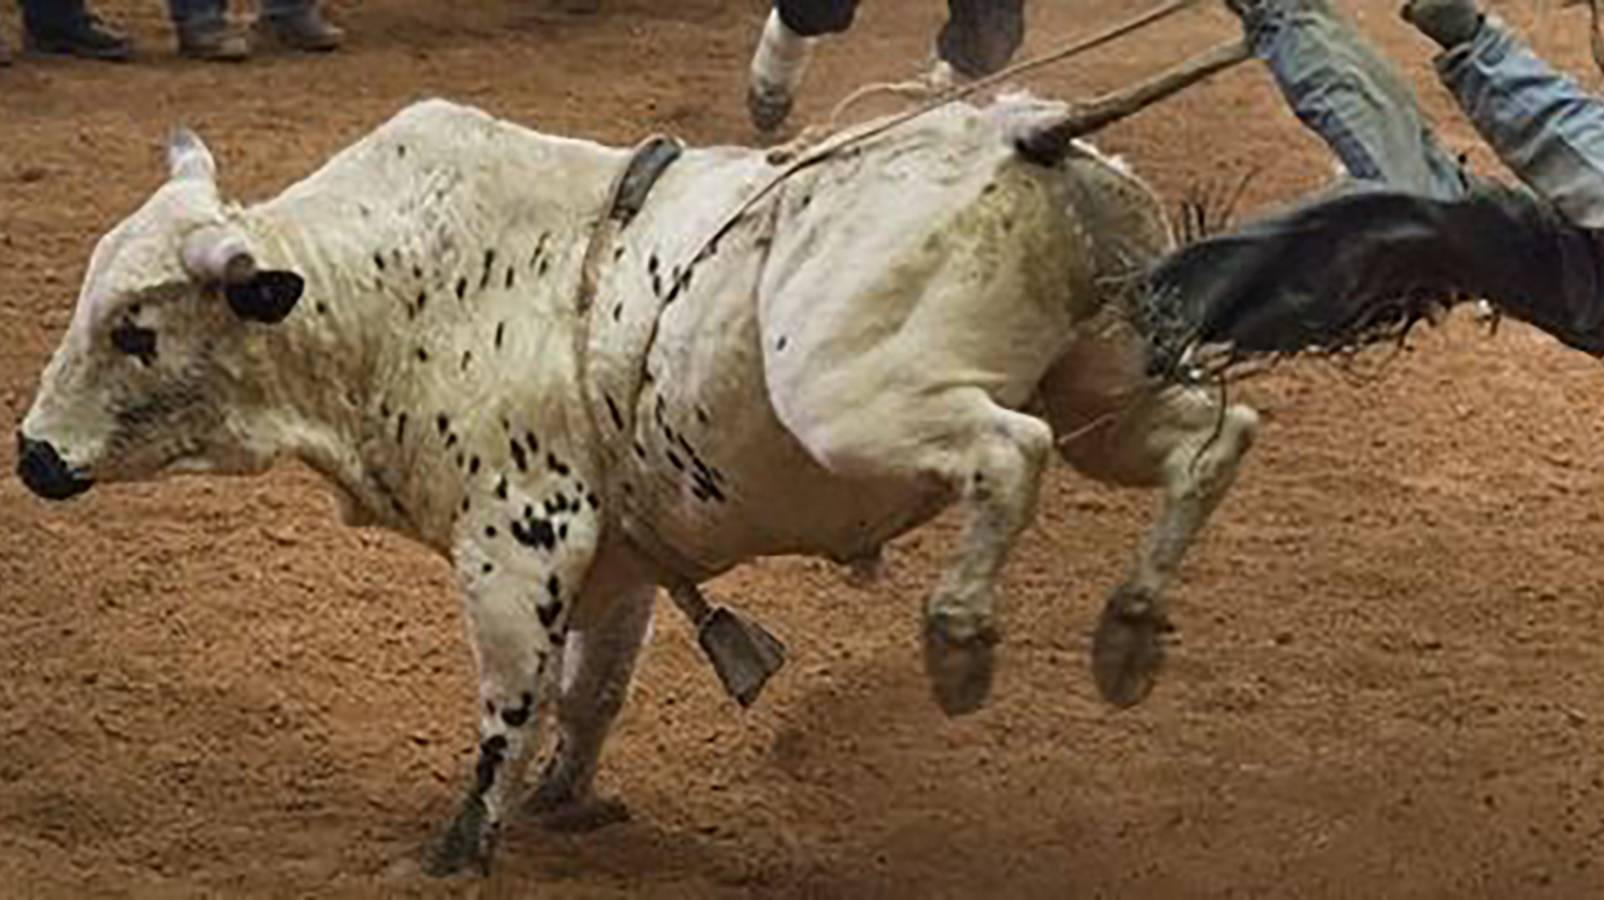 PBR - Professional Bull Riders (Rescheduled from 3/14)